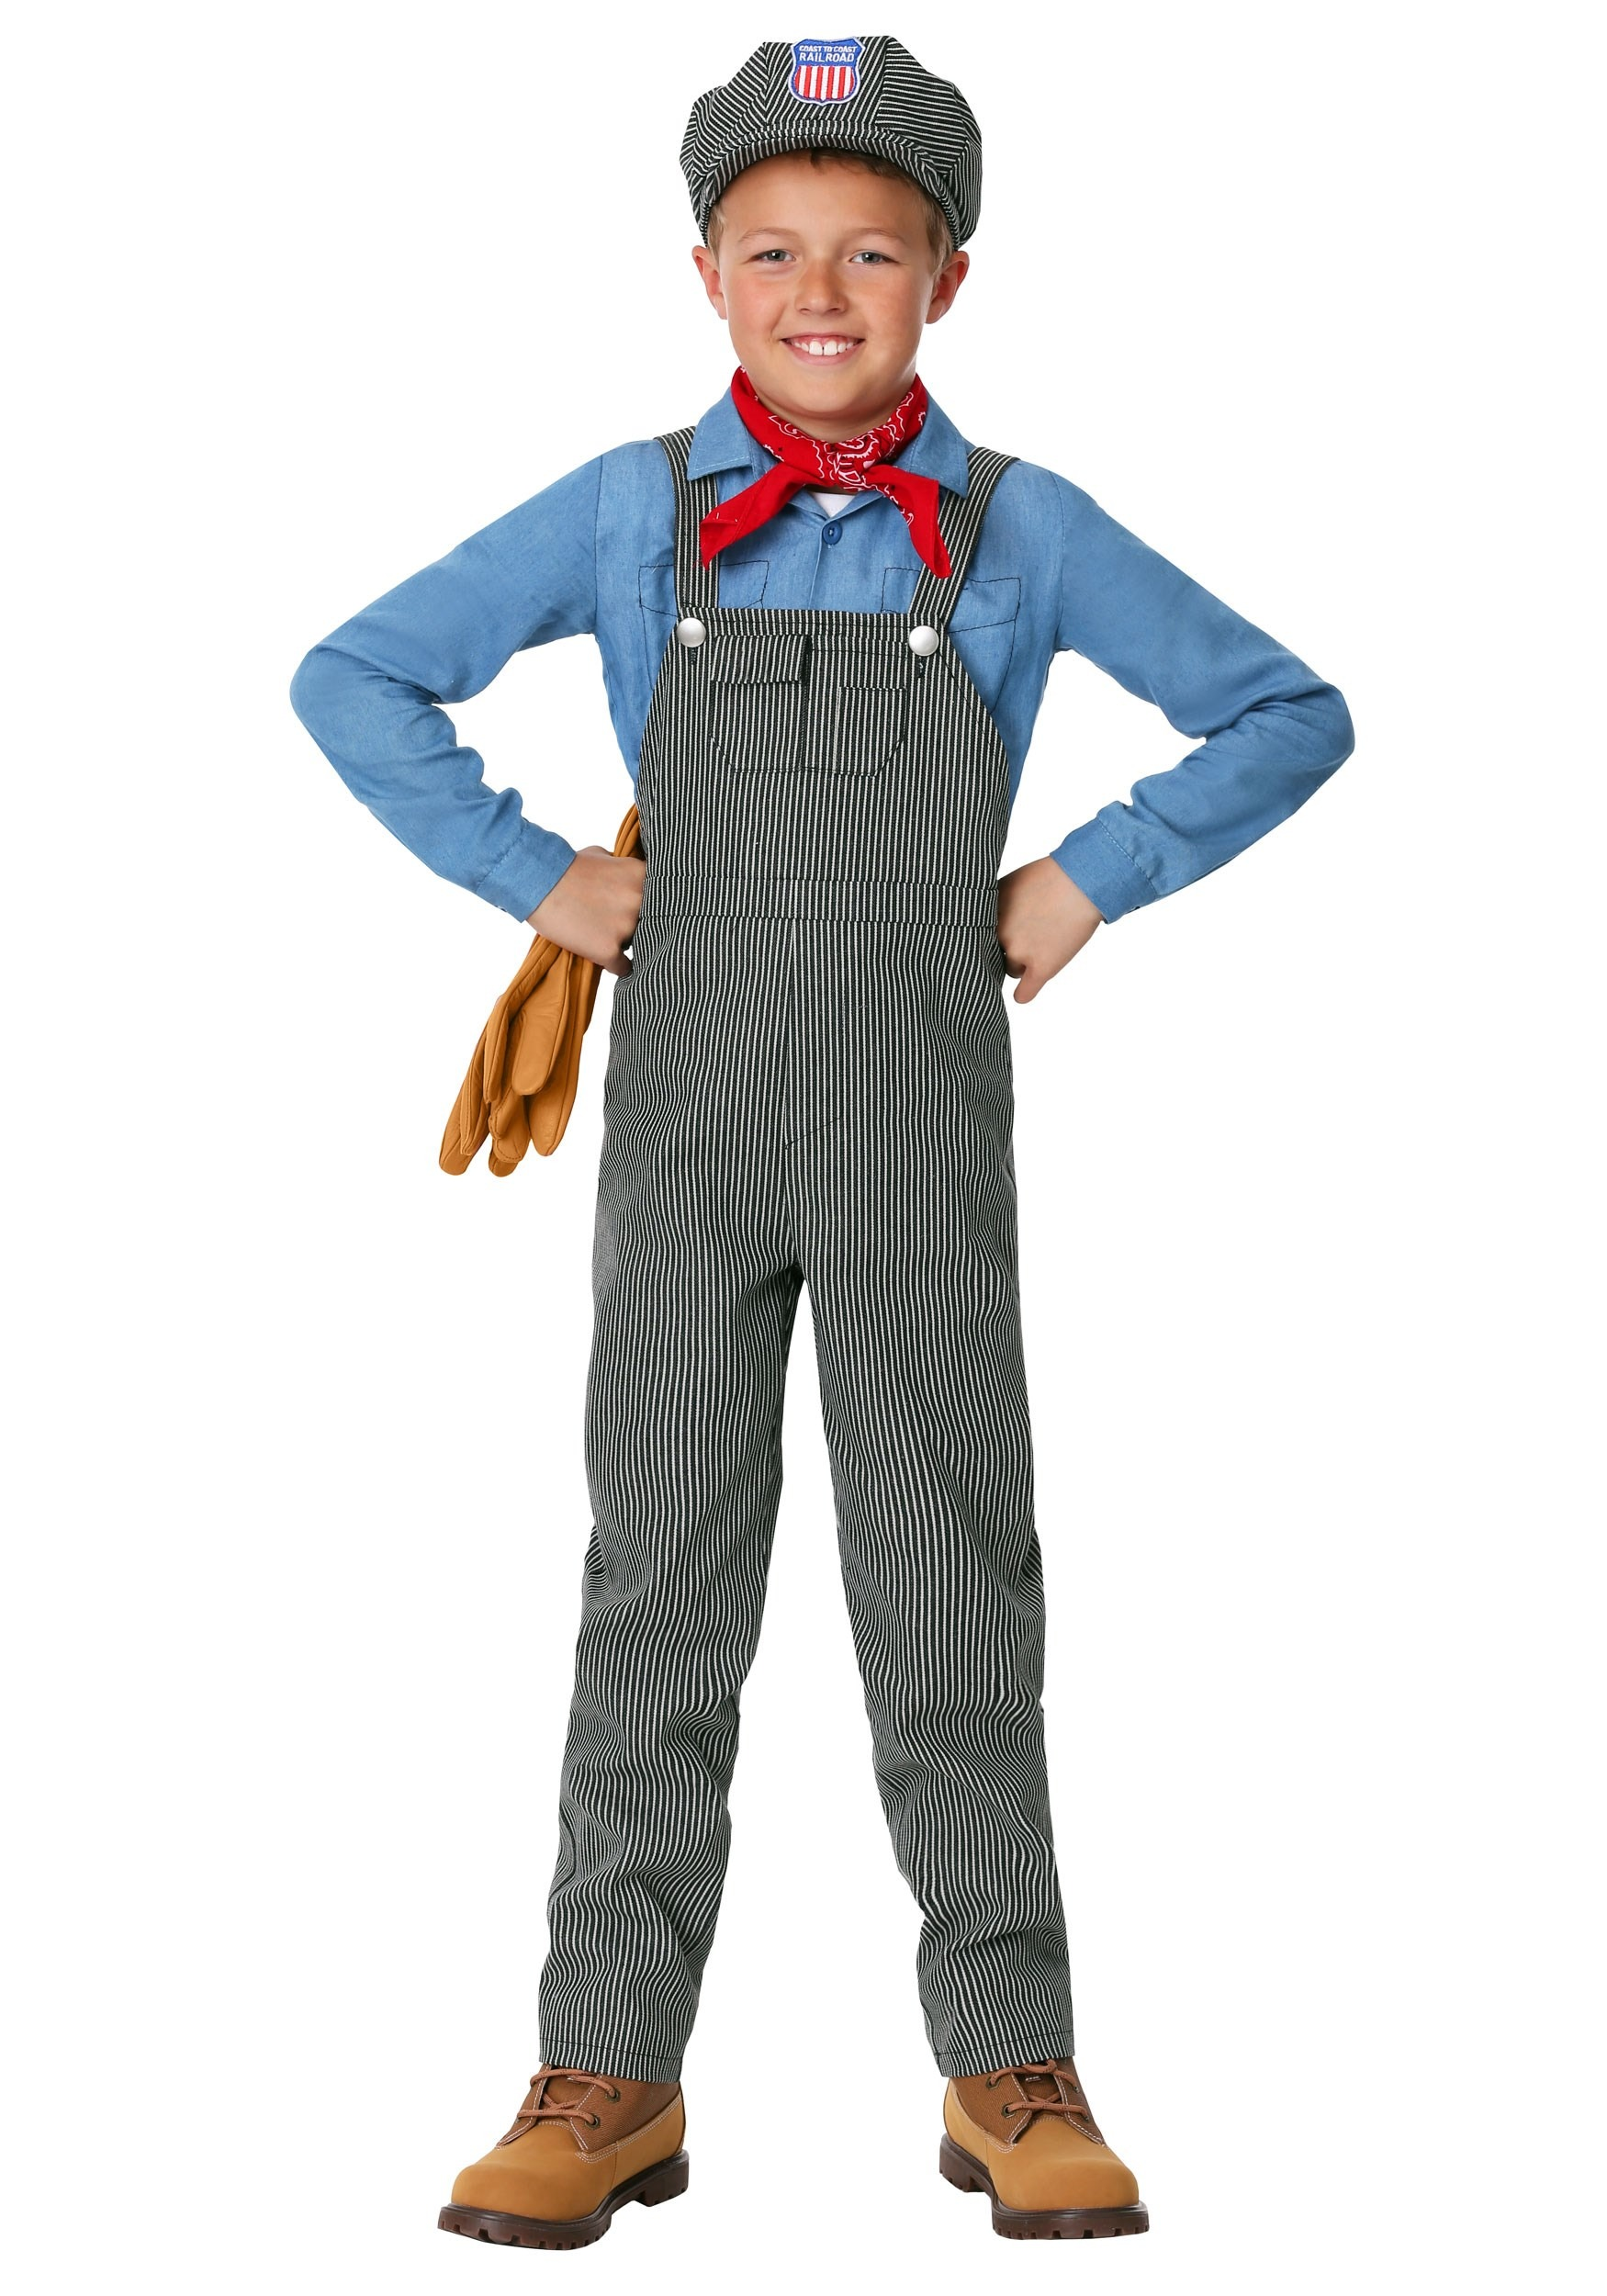 43b52c9651 Train Engineer Costume for Children